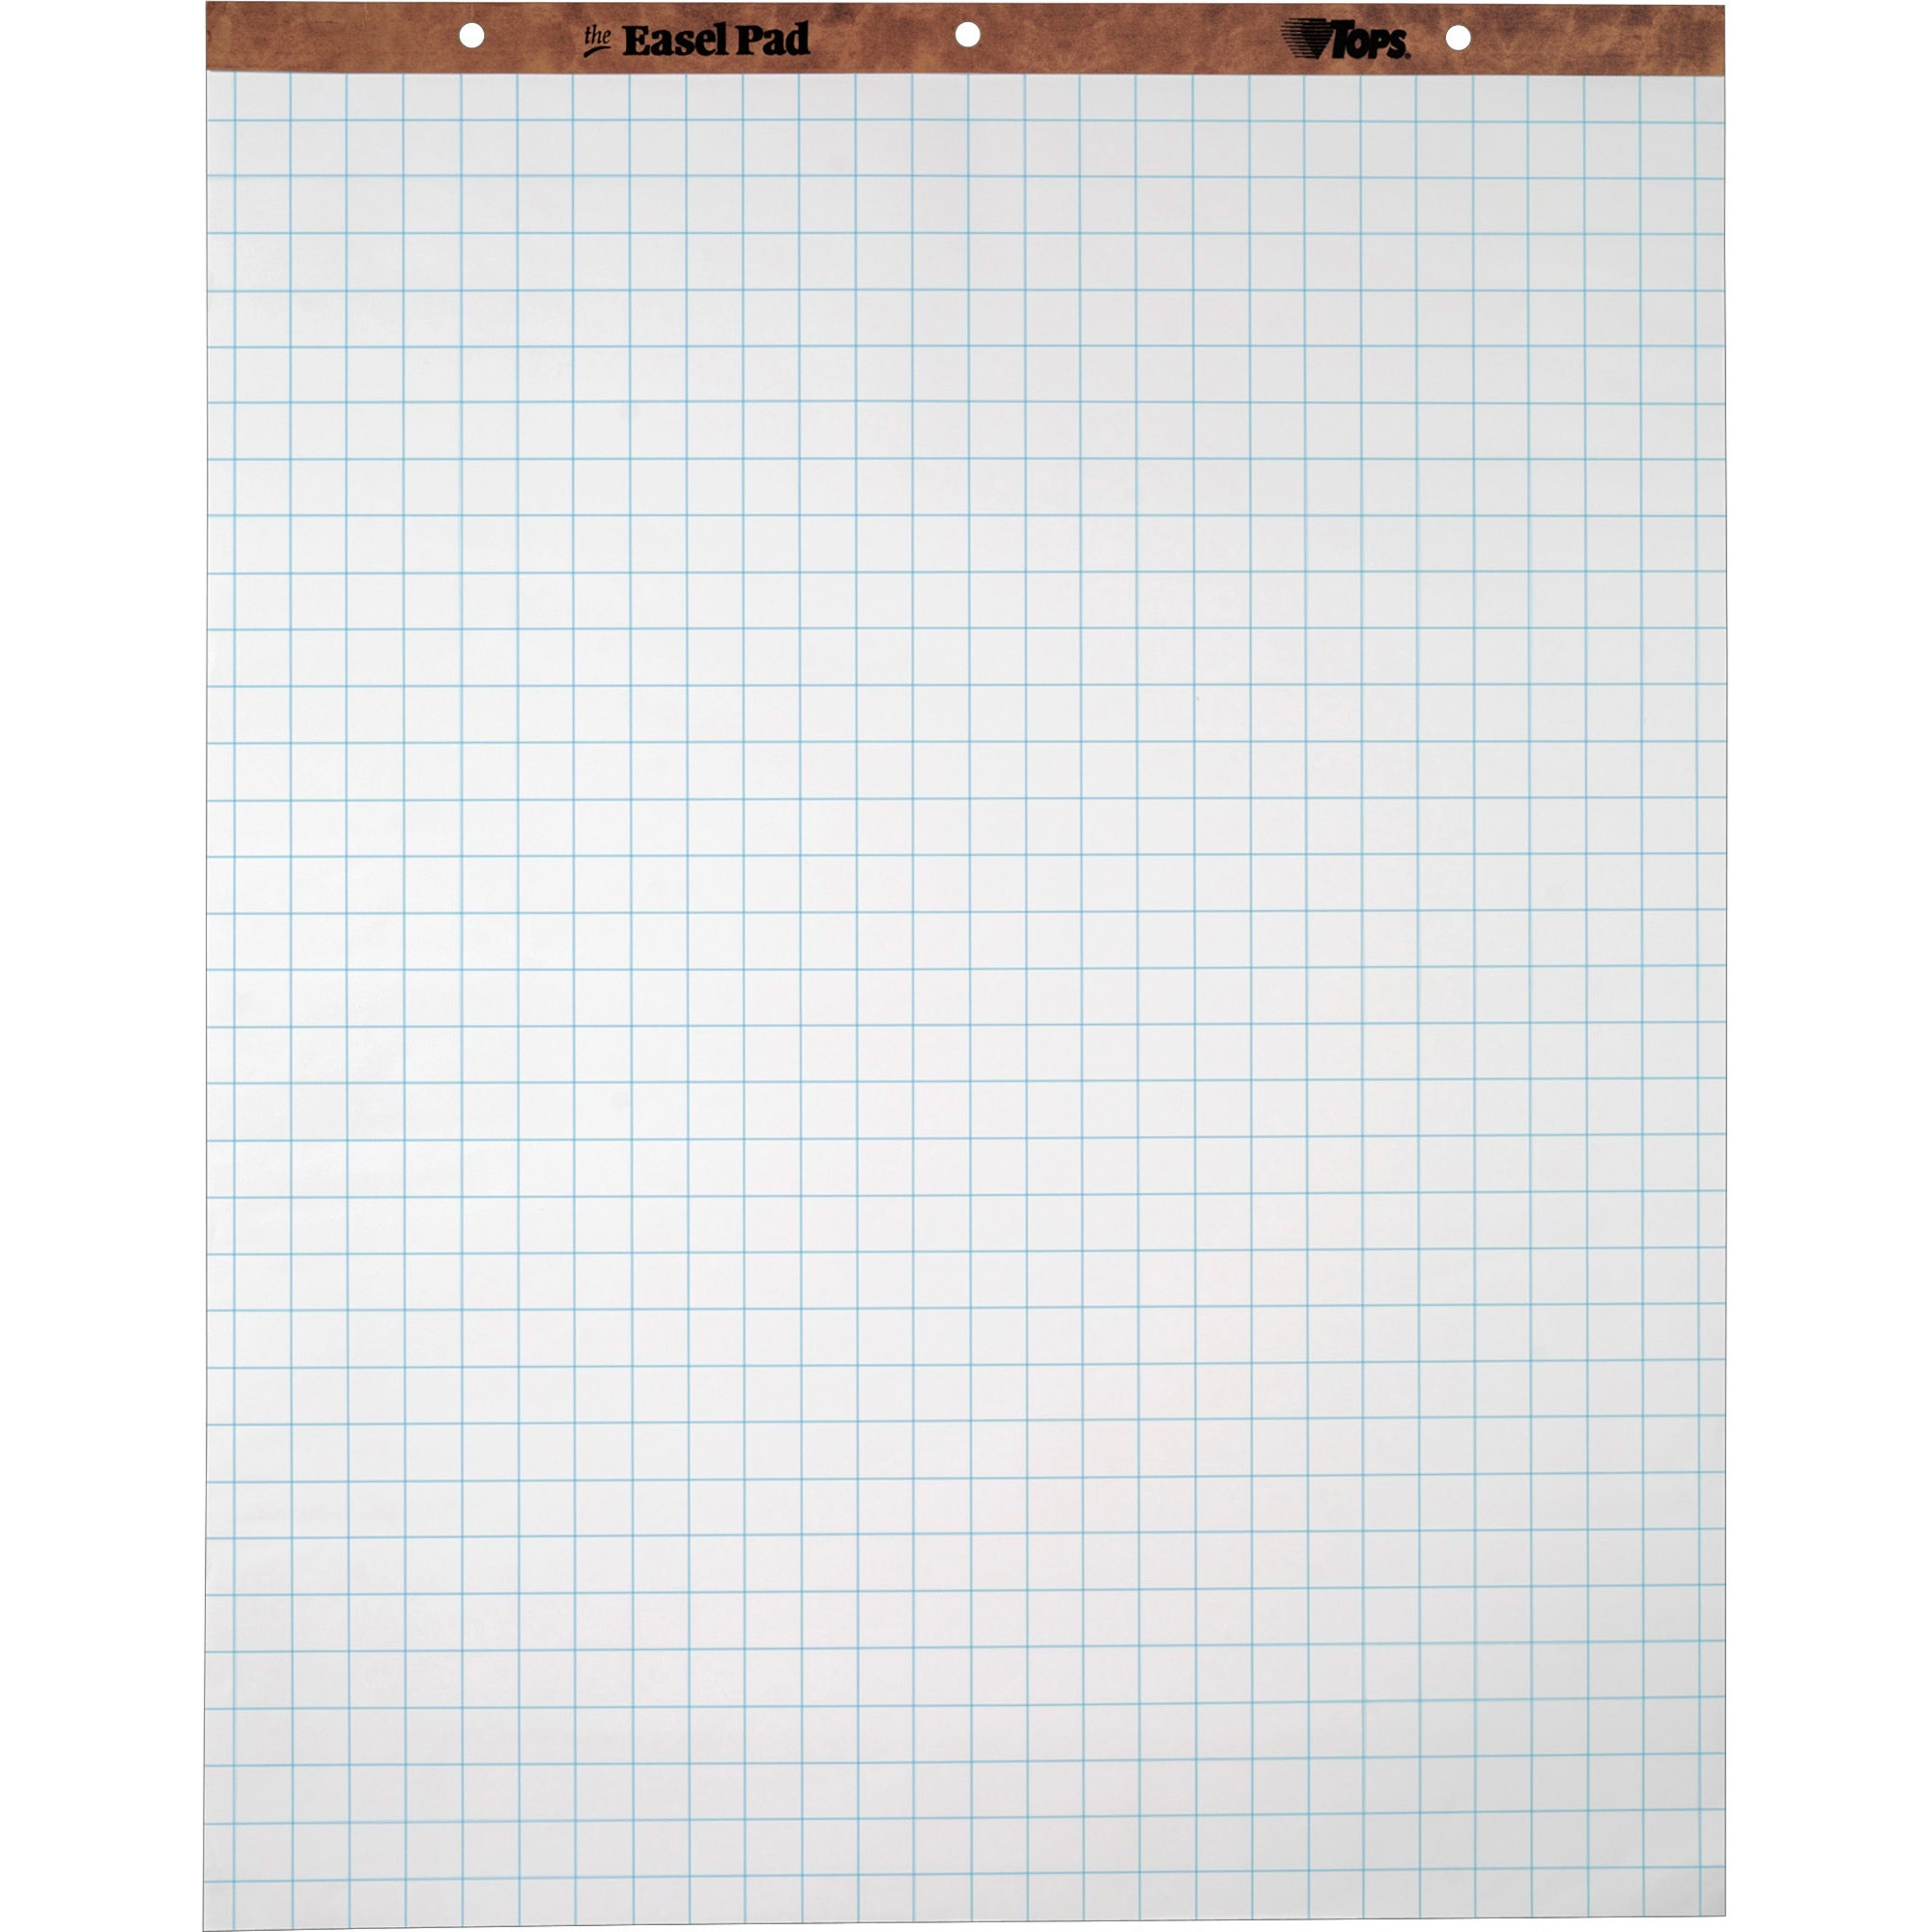 "TOPS, TOP7902, 1"" Grid Square Easel Pads, 2 / Carton"